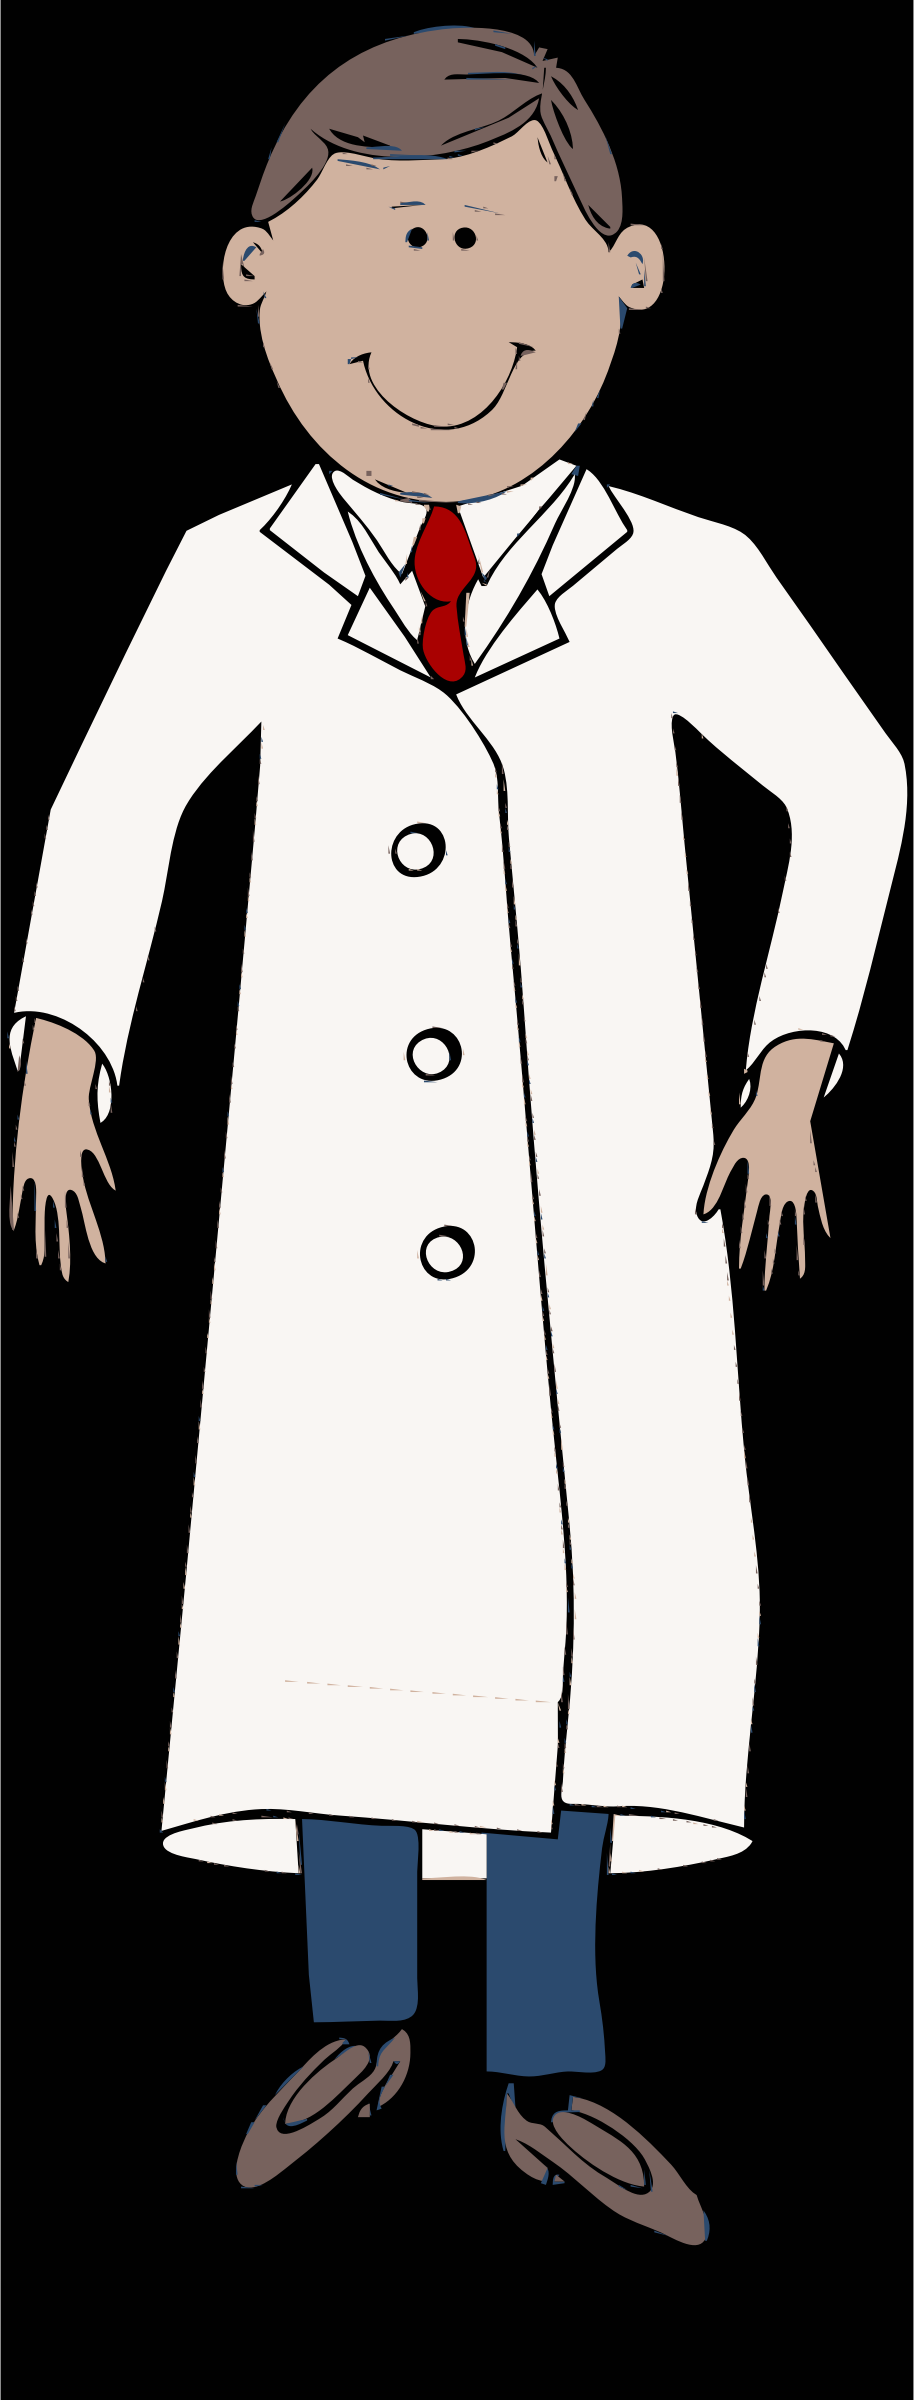 Tie clipart coat tie With coat worn lab scientist